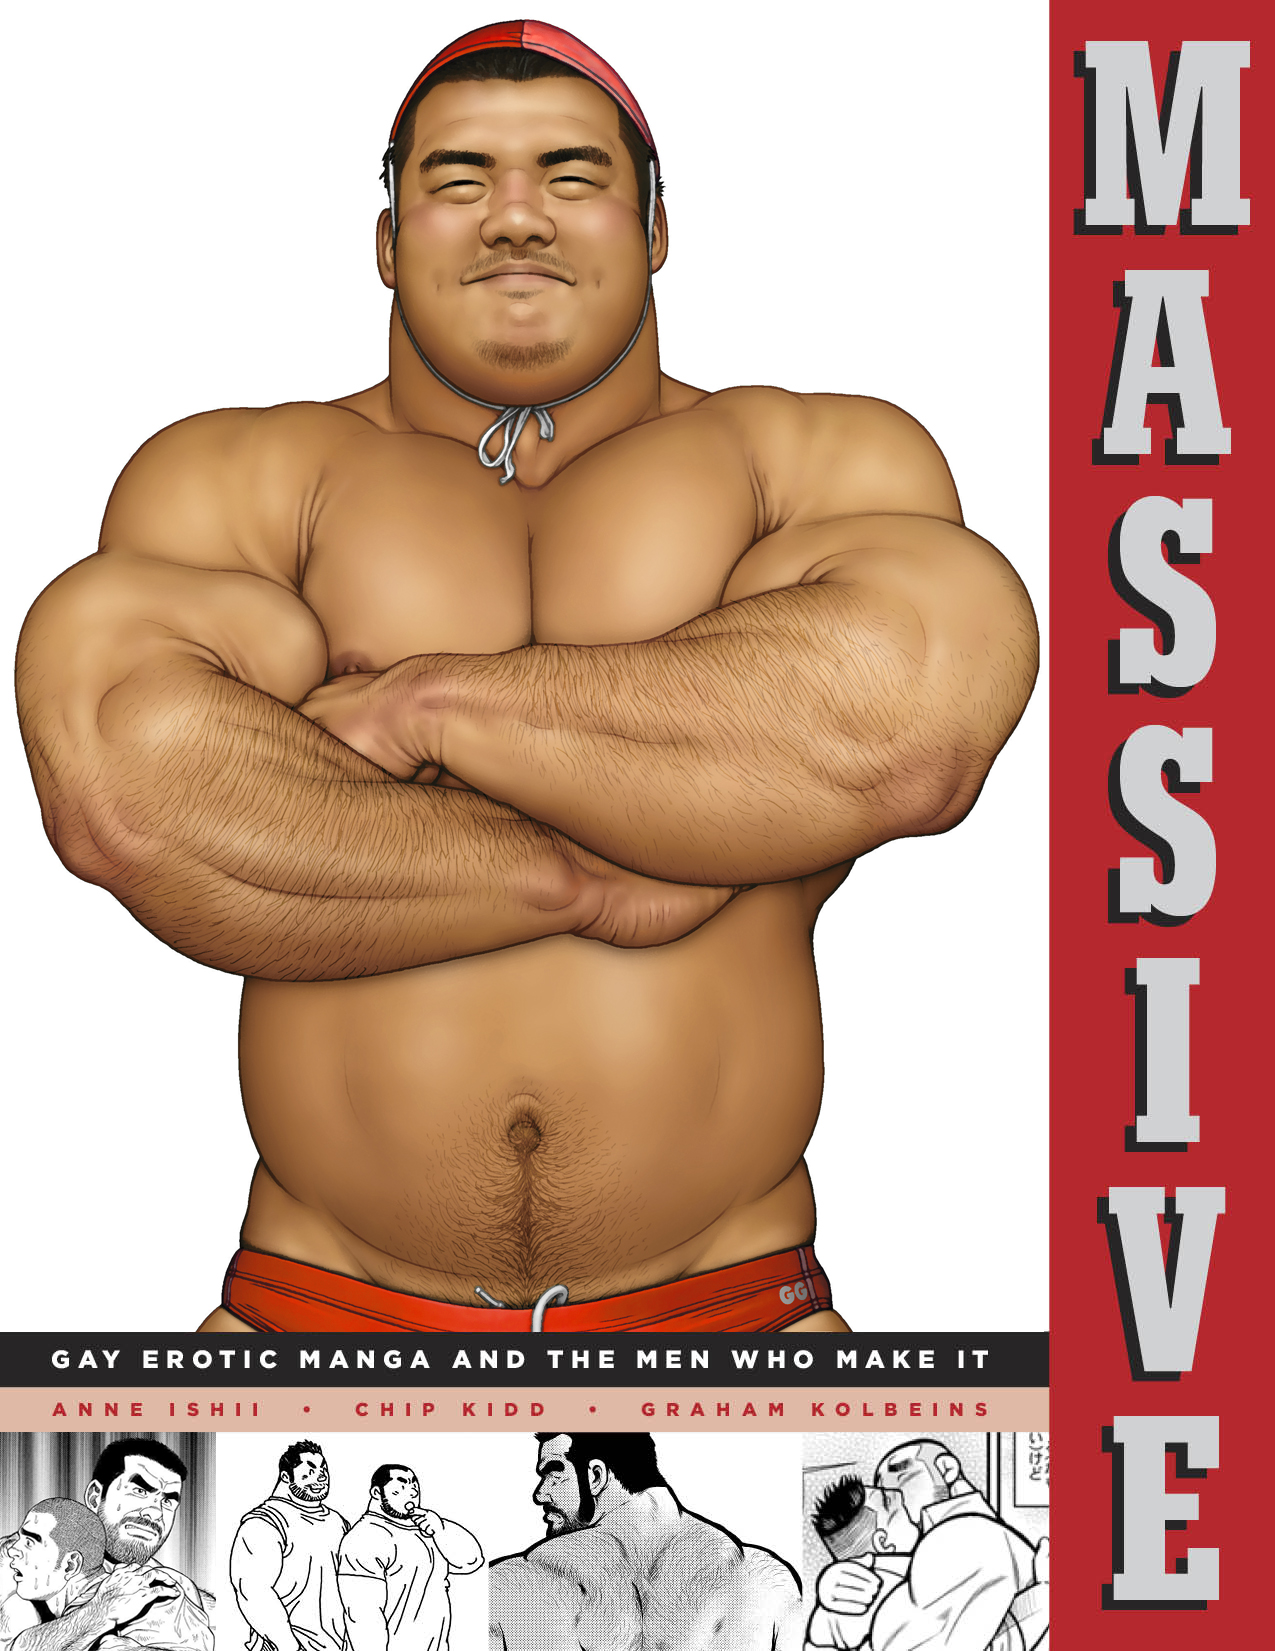 Fluid Exchange: Massive: Gay Erotic Manga and the Men Who Make It